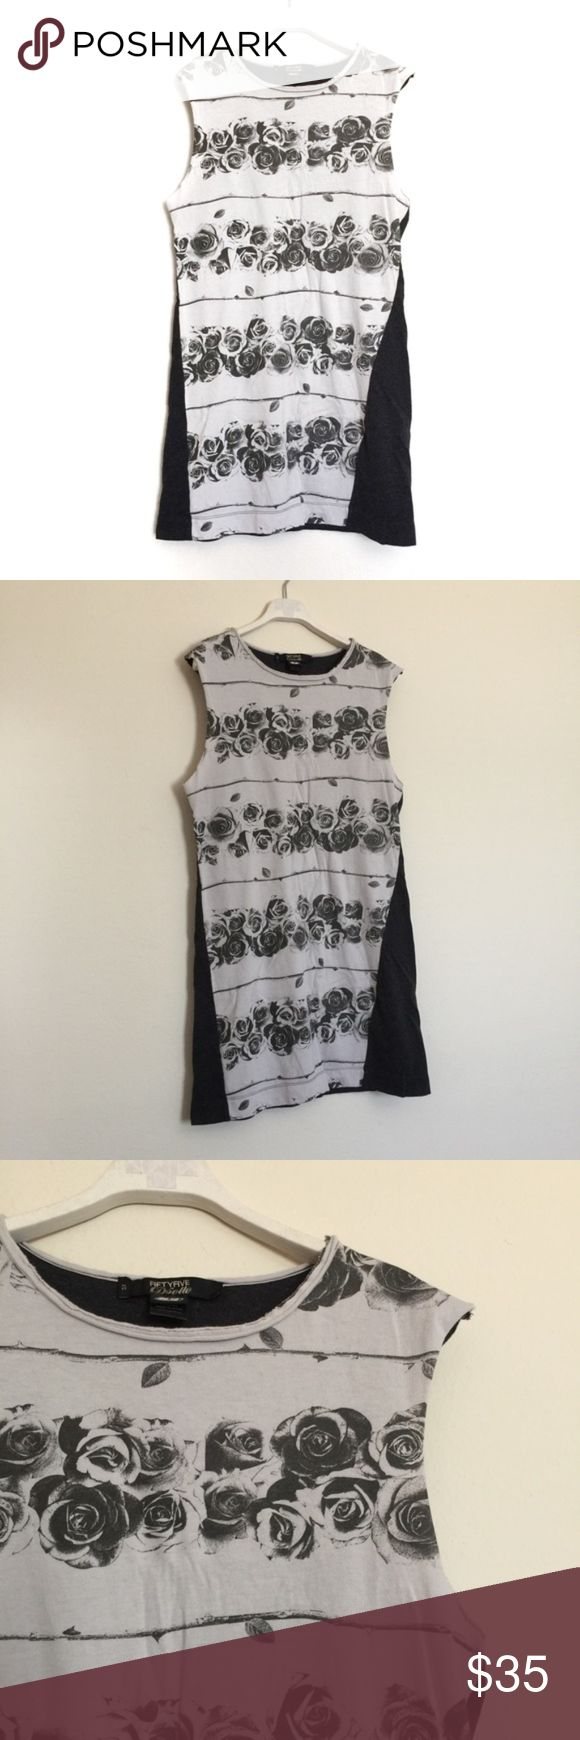 """Diesel 55 grey cream rose floral stripe dress XS Diesel 55 grey cream rose floral stripe dress, new with tags. Tunic dress with vintage rose print pattern, sleeveless with scoop neck. Pit to pit 18"""", length 33"""". 100% cotton. Diesel Dresses"""